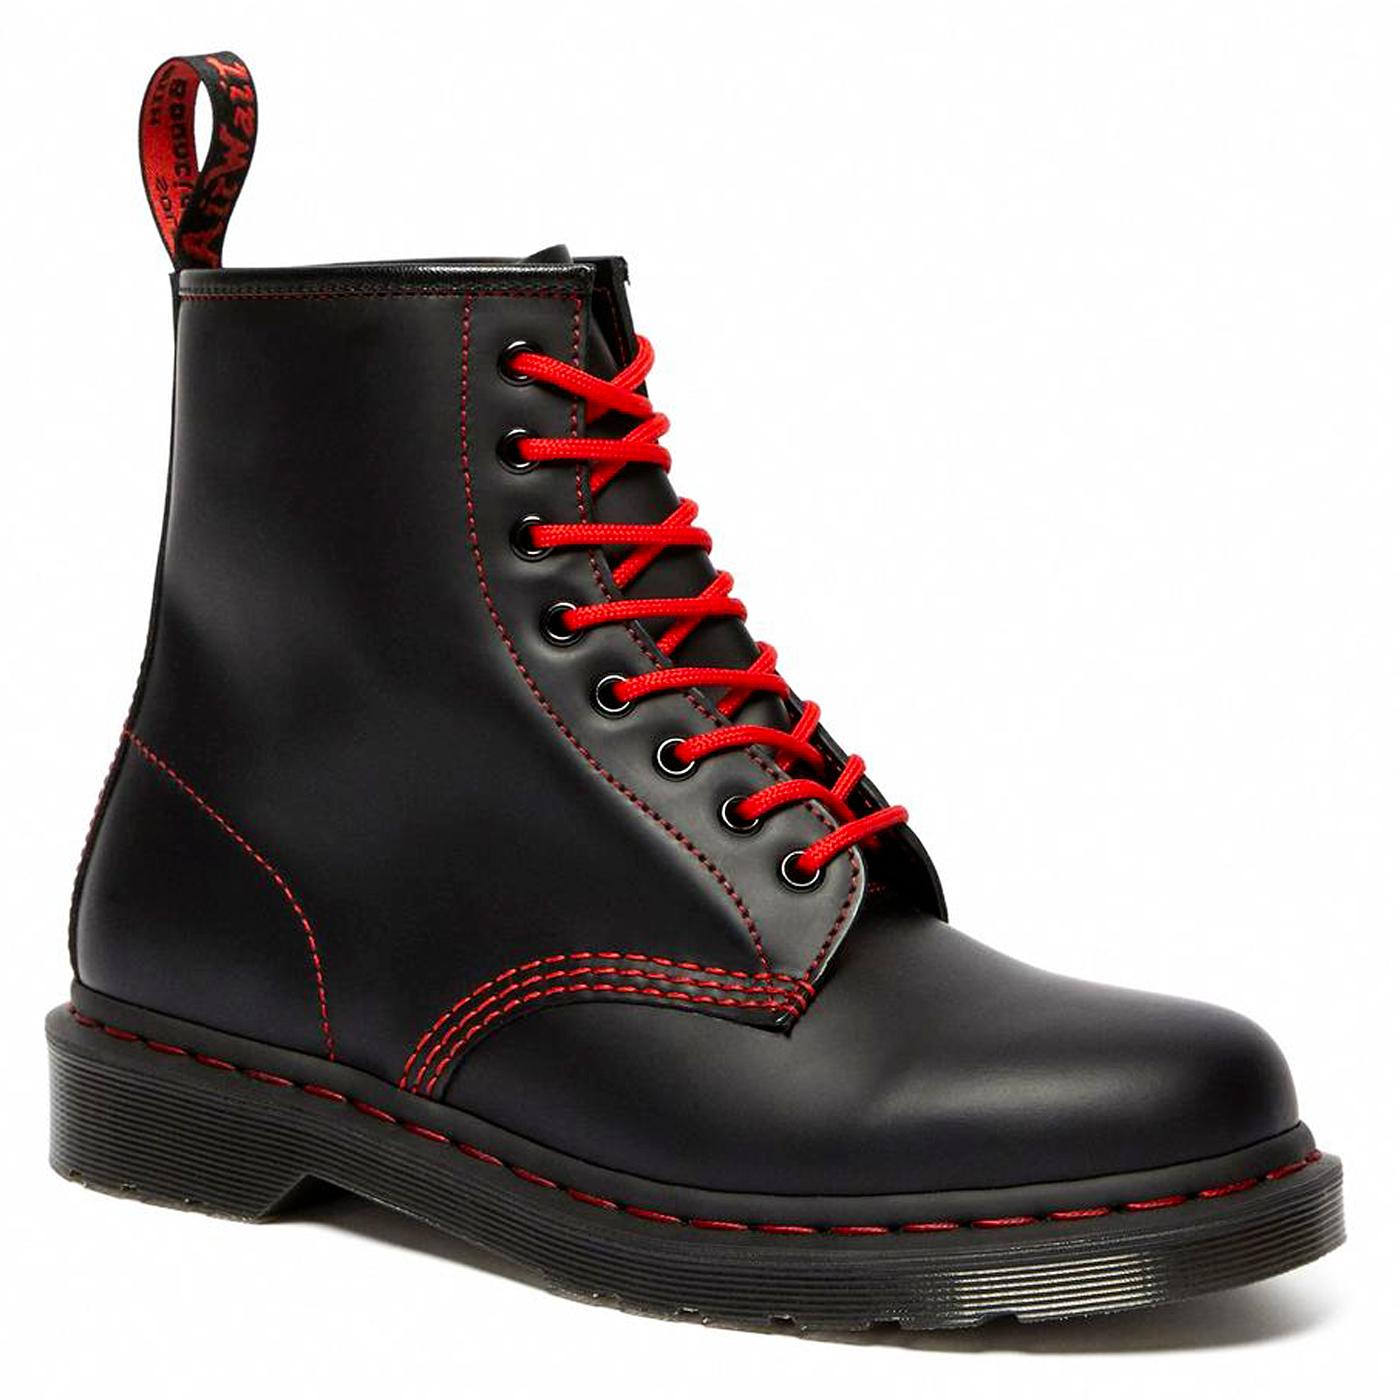 DR MARTENS 1460 RS Smooth Mod Boots (Black/Red)